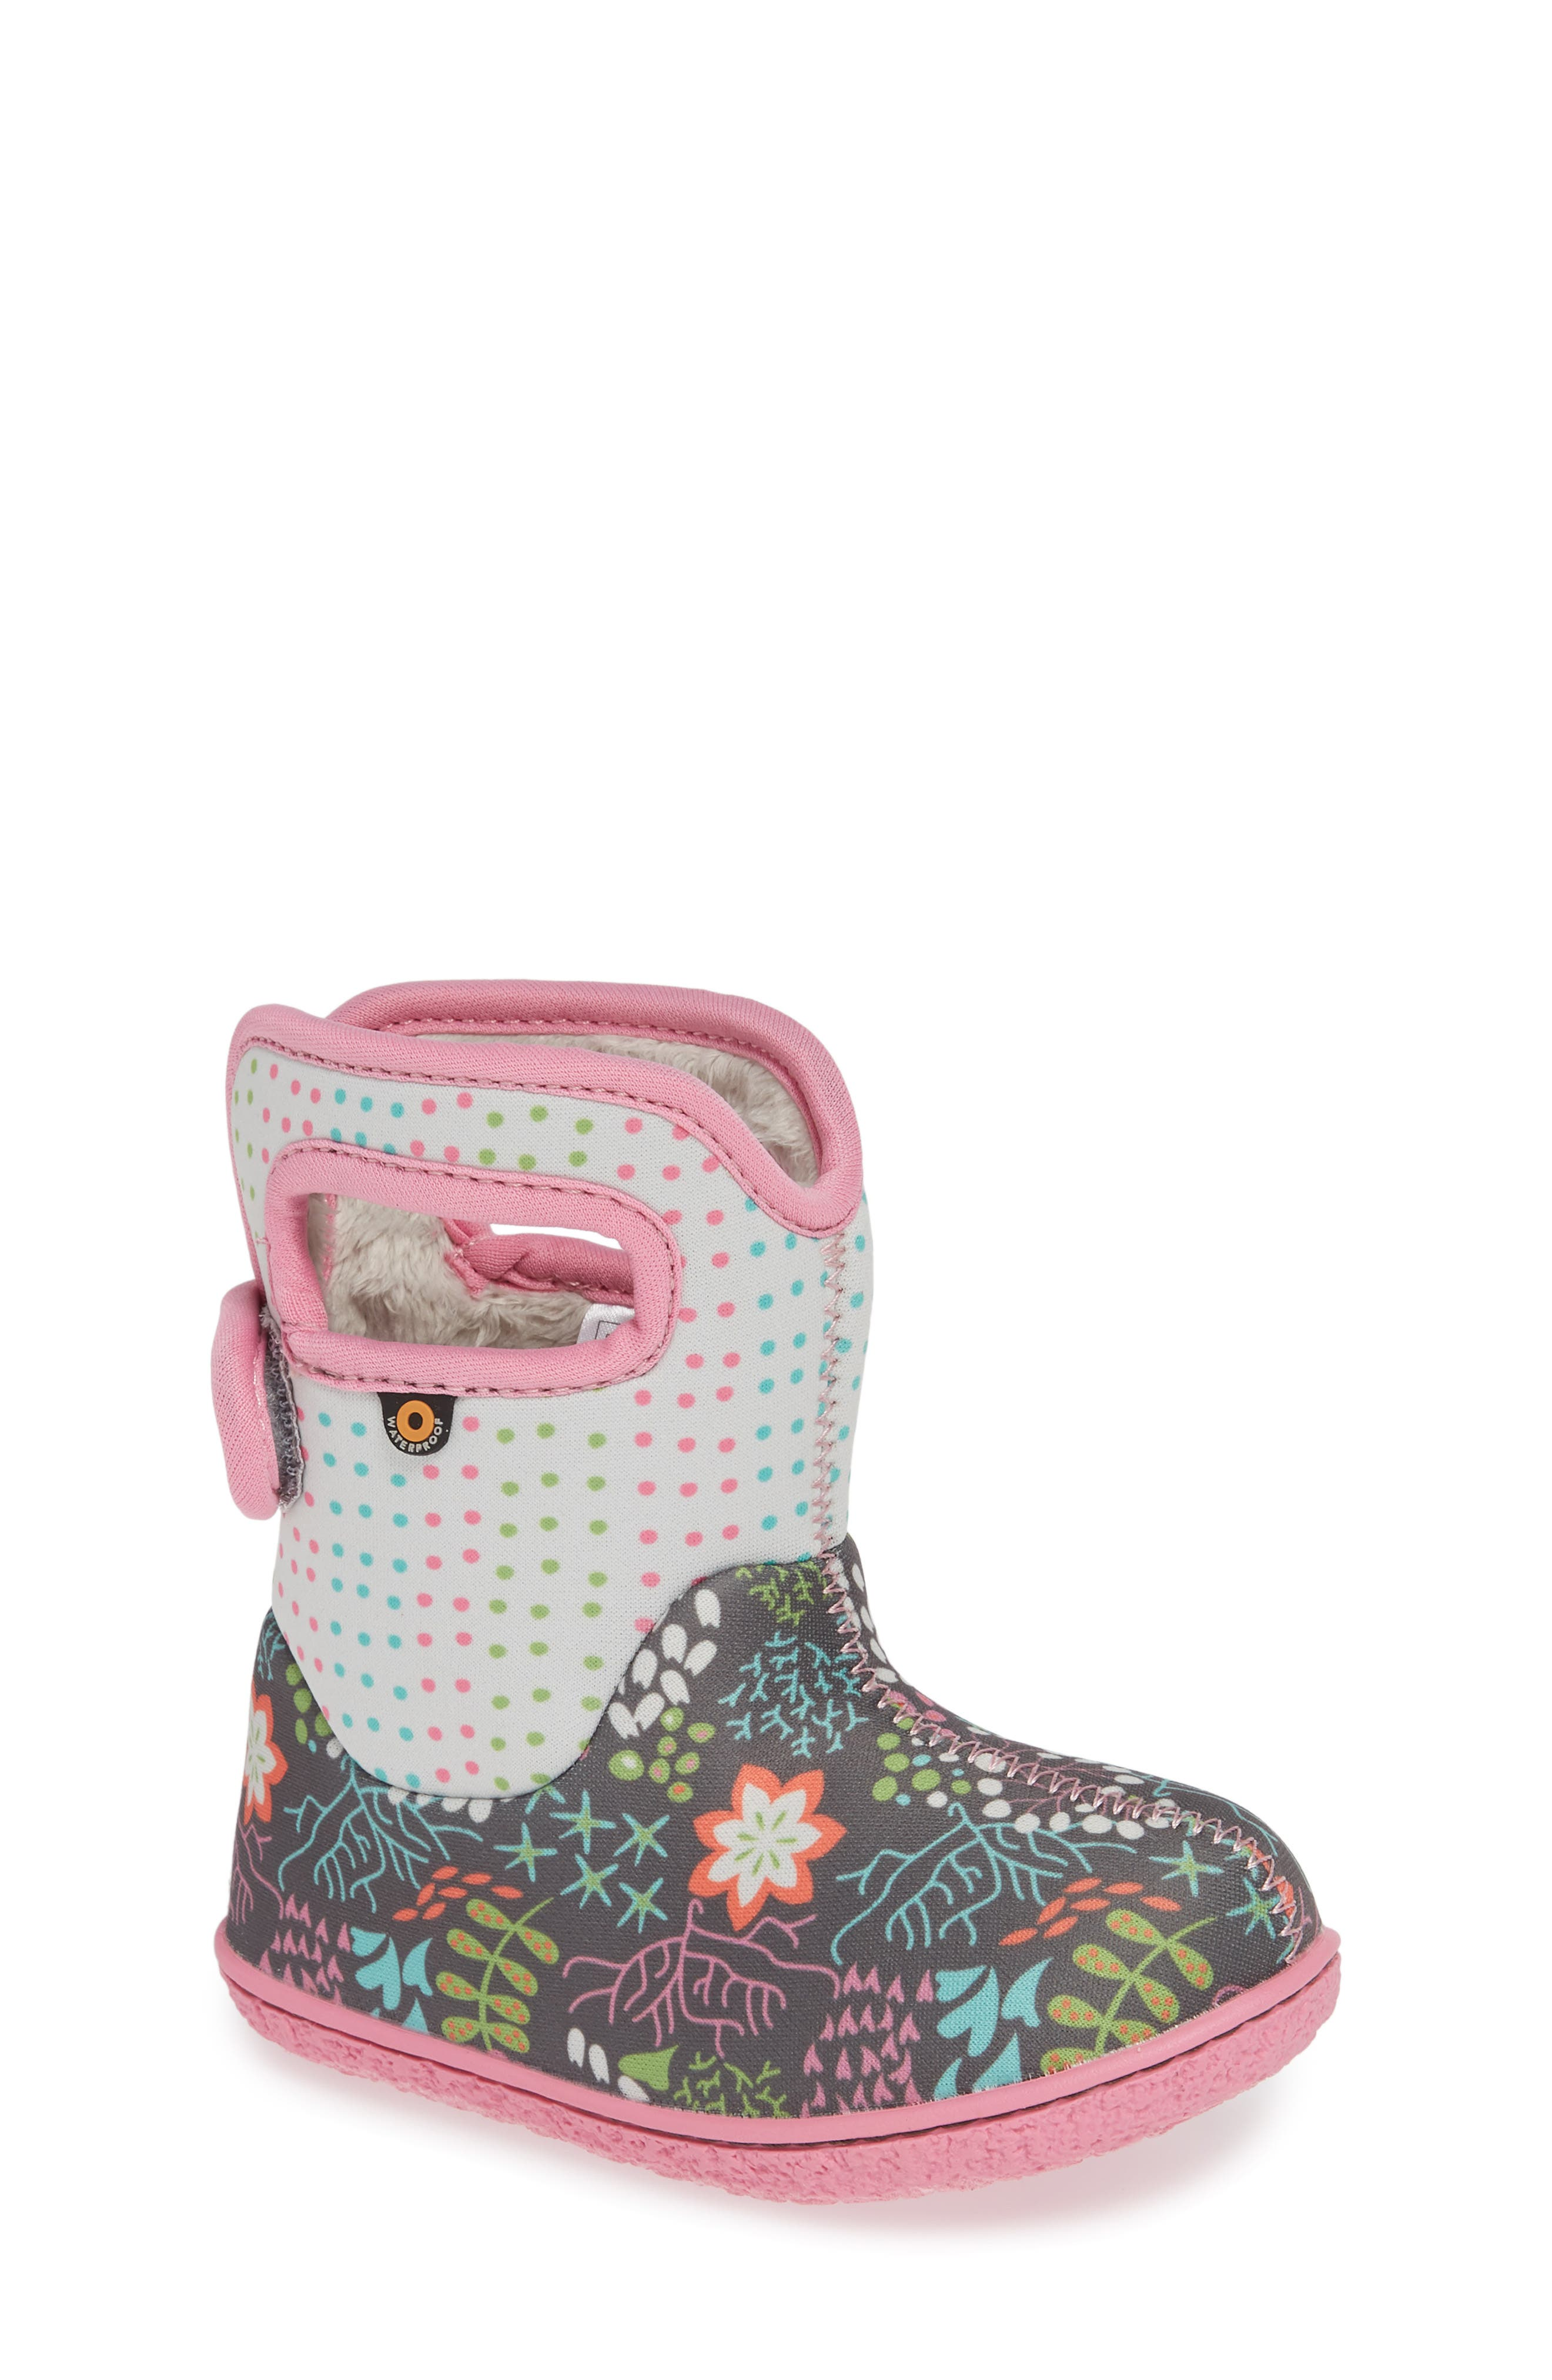 BOGS,                             Baby Bogs New Flower Dot Waterproof Boot,                             Main thumbnail 1, color,                             062